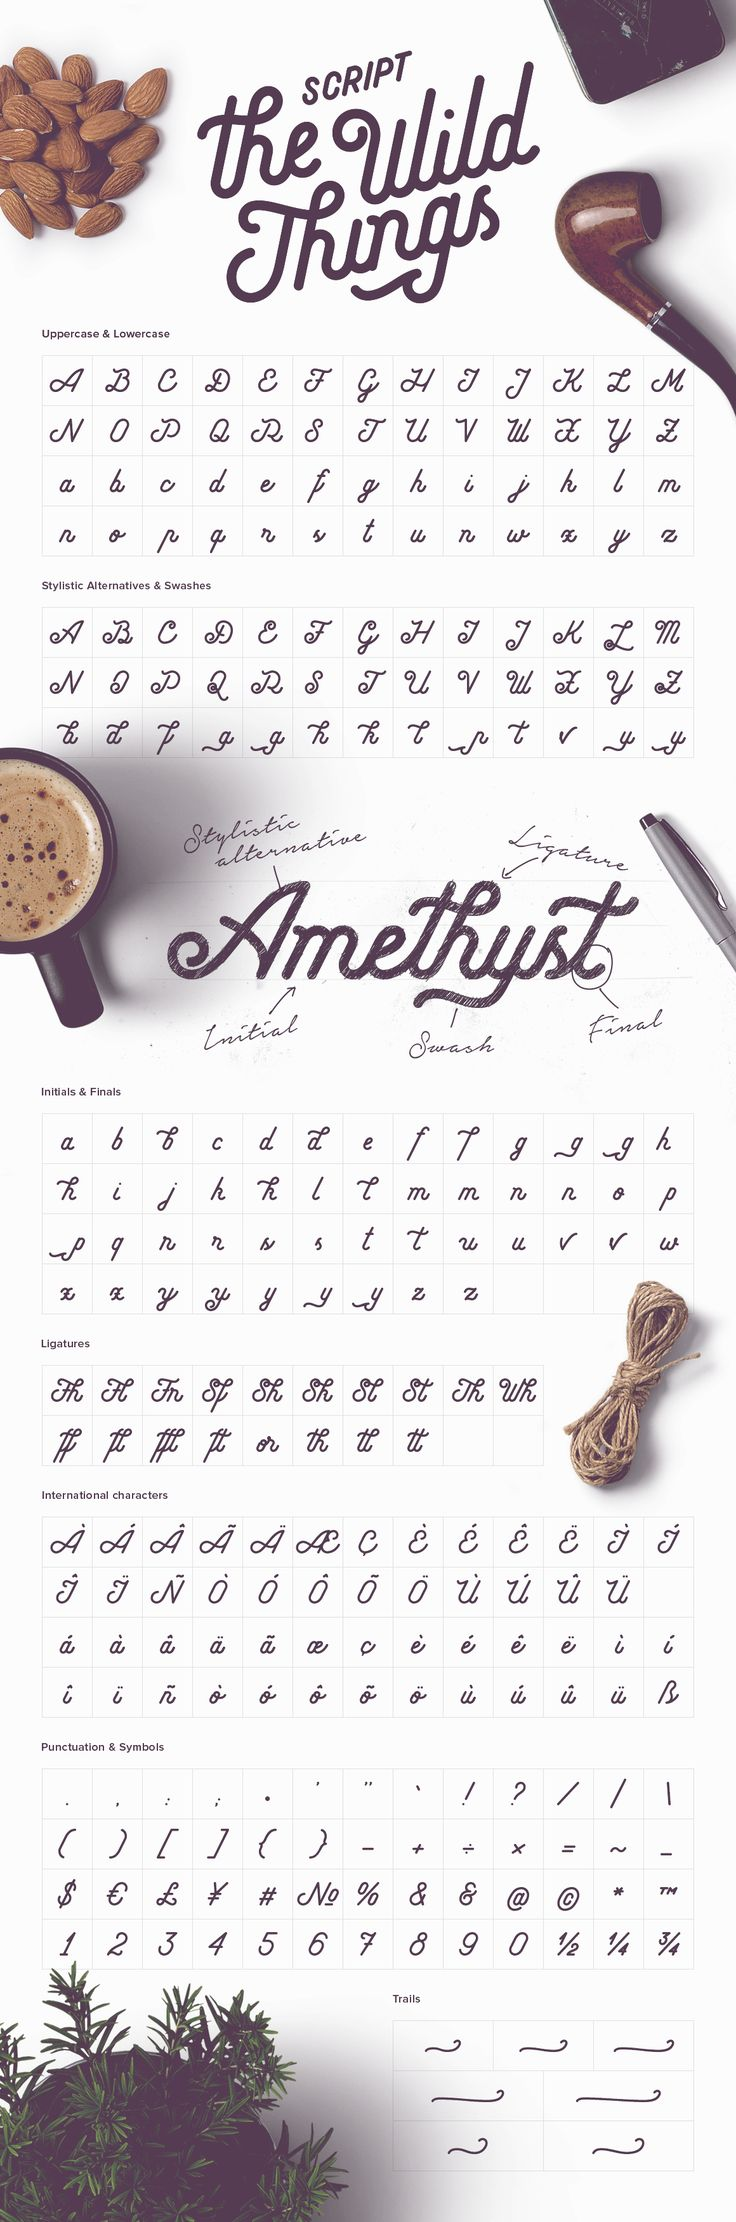 The Wild Things Script Font Alphabet, handwritten with flourishes and tails                                                                                                                                                      More